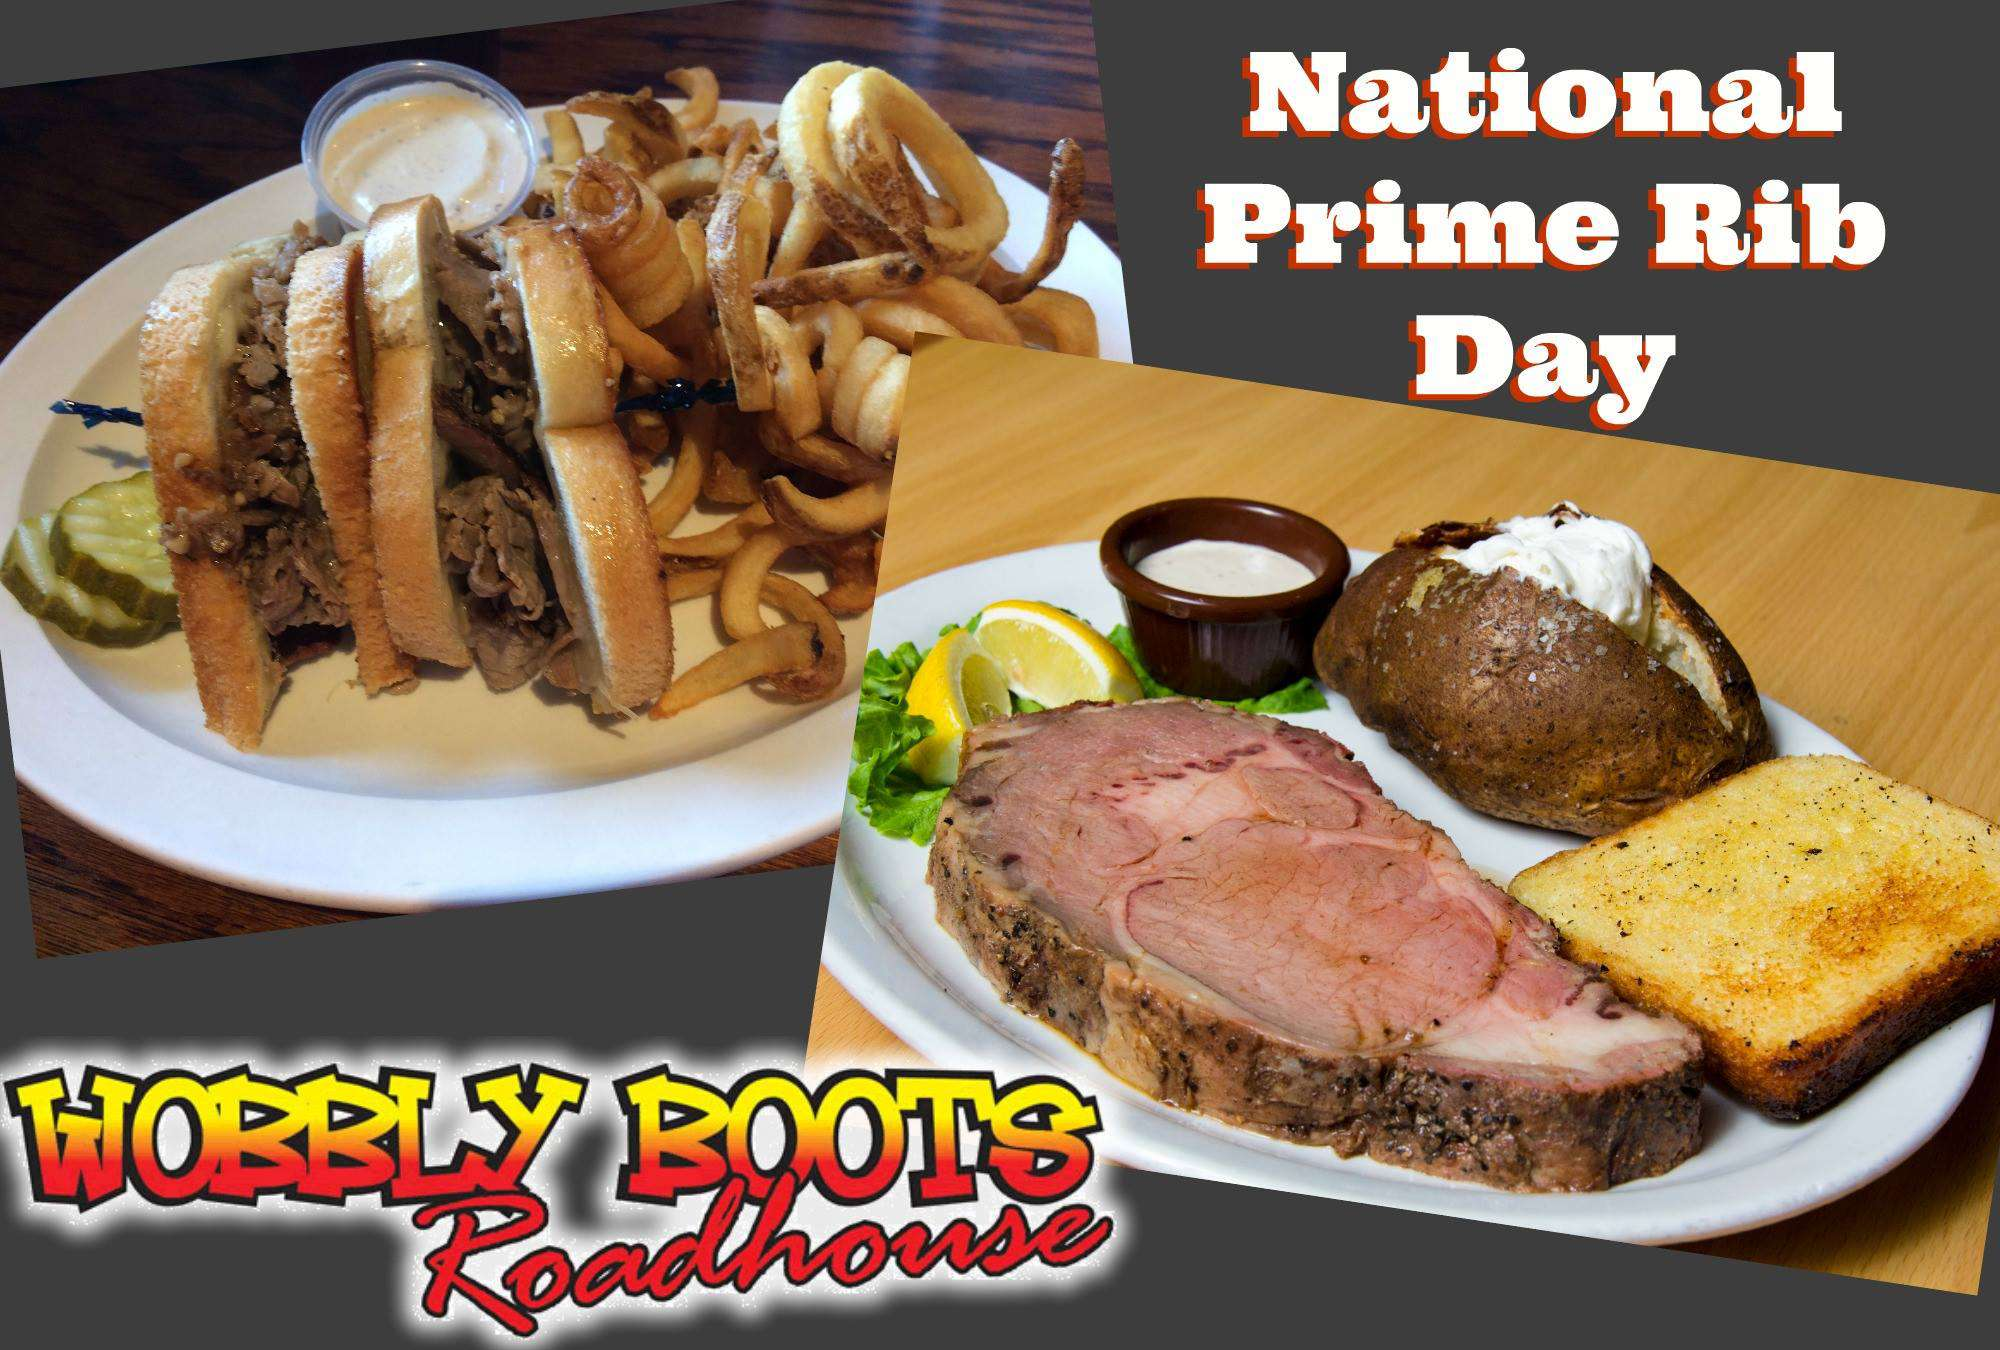 National Prime Rib Day Wishes Images download